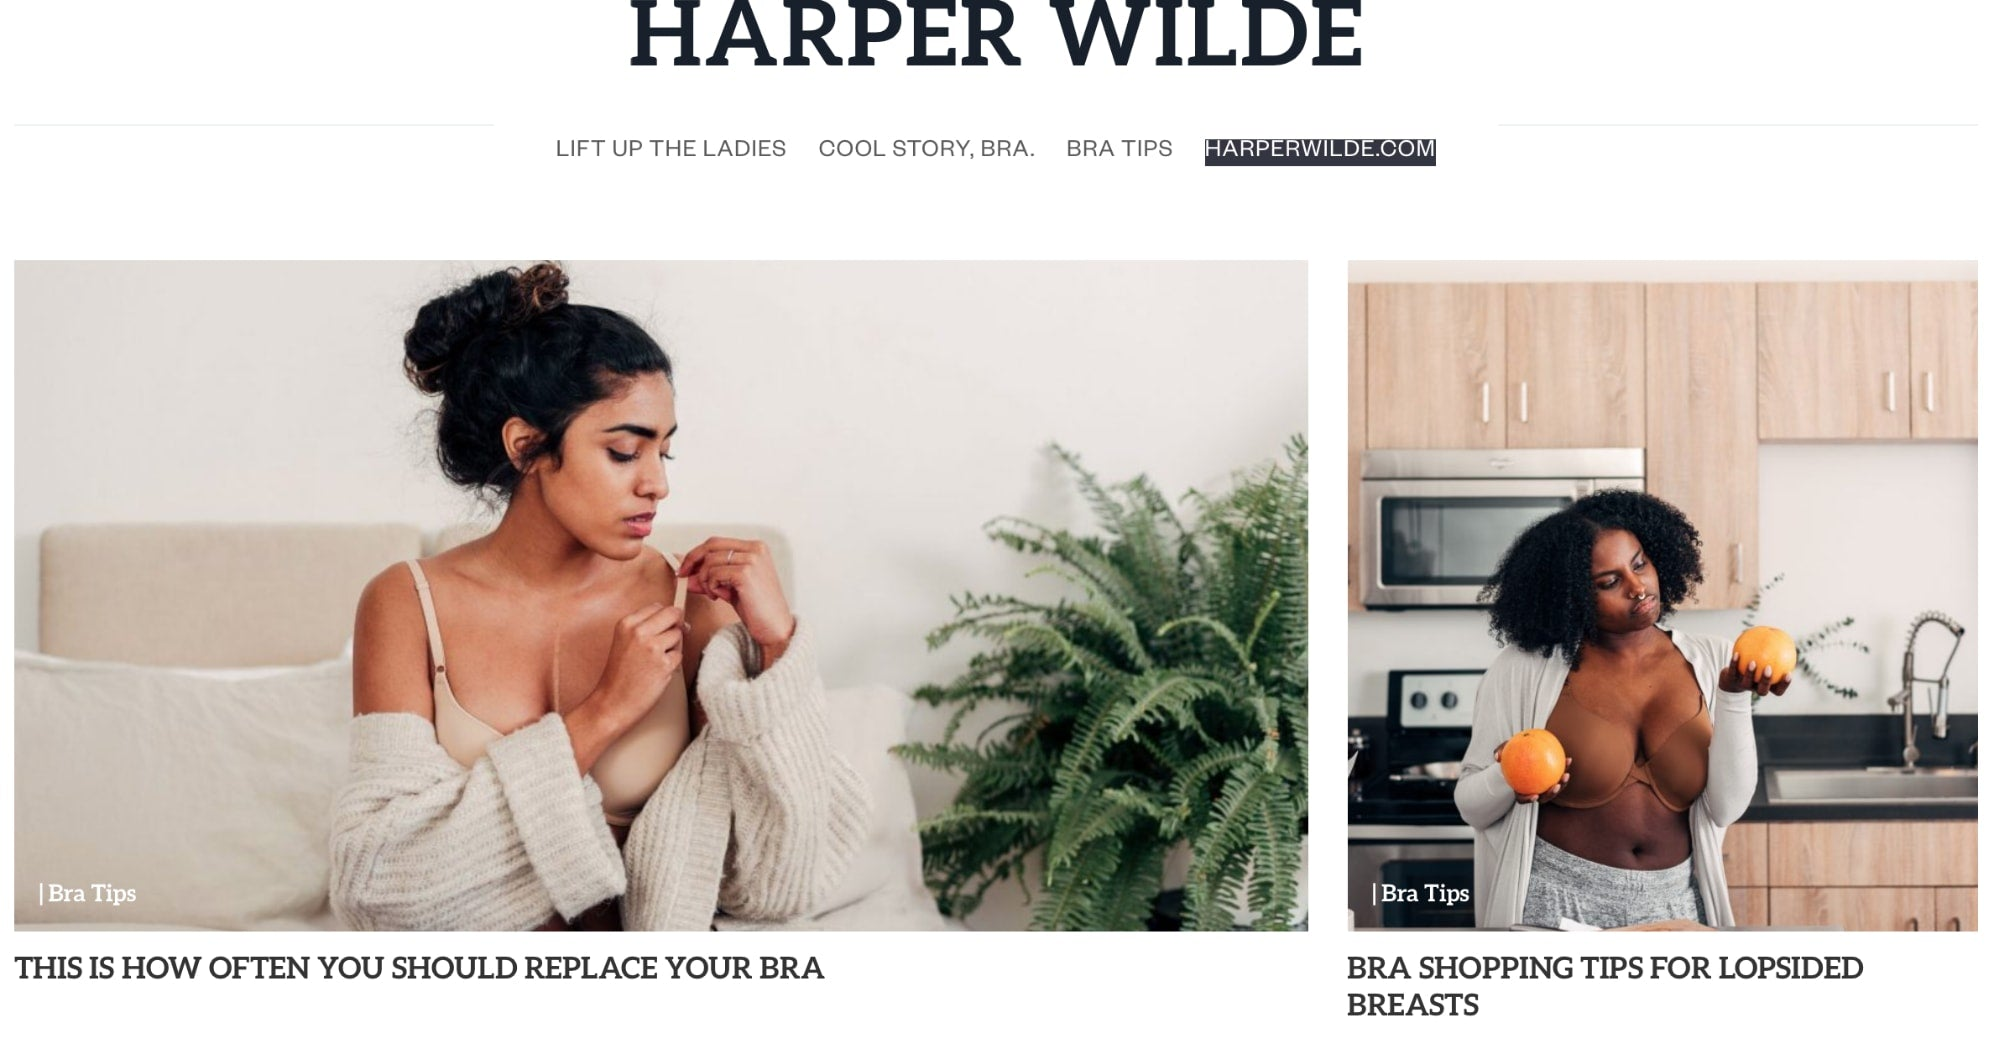 blog example for a bra company